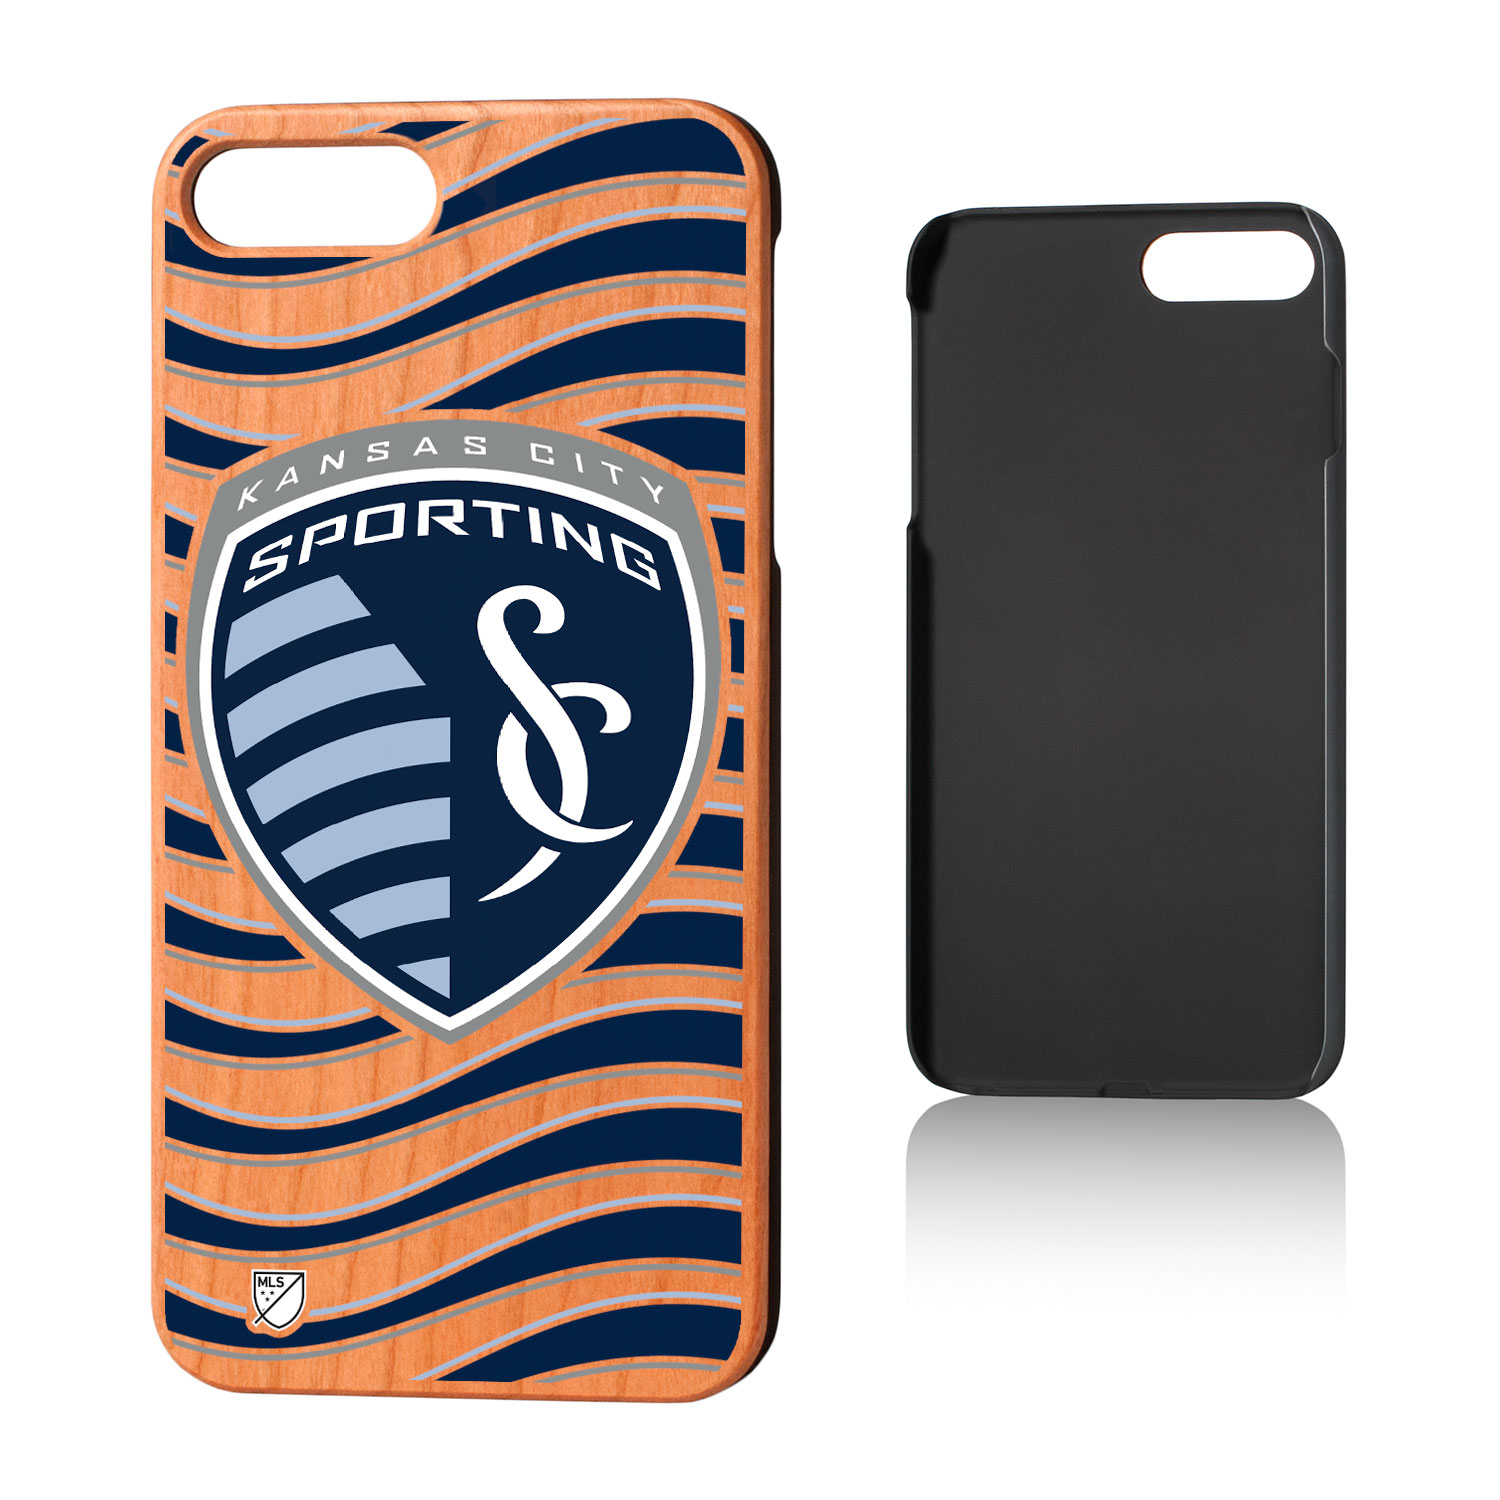 Sporting Kansas City SPORTING Wave Cherry Case for iPhone 8 Plus / 7 Plus